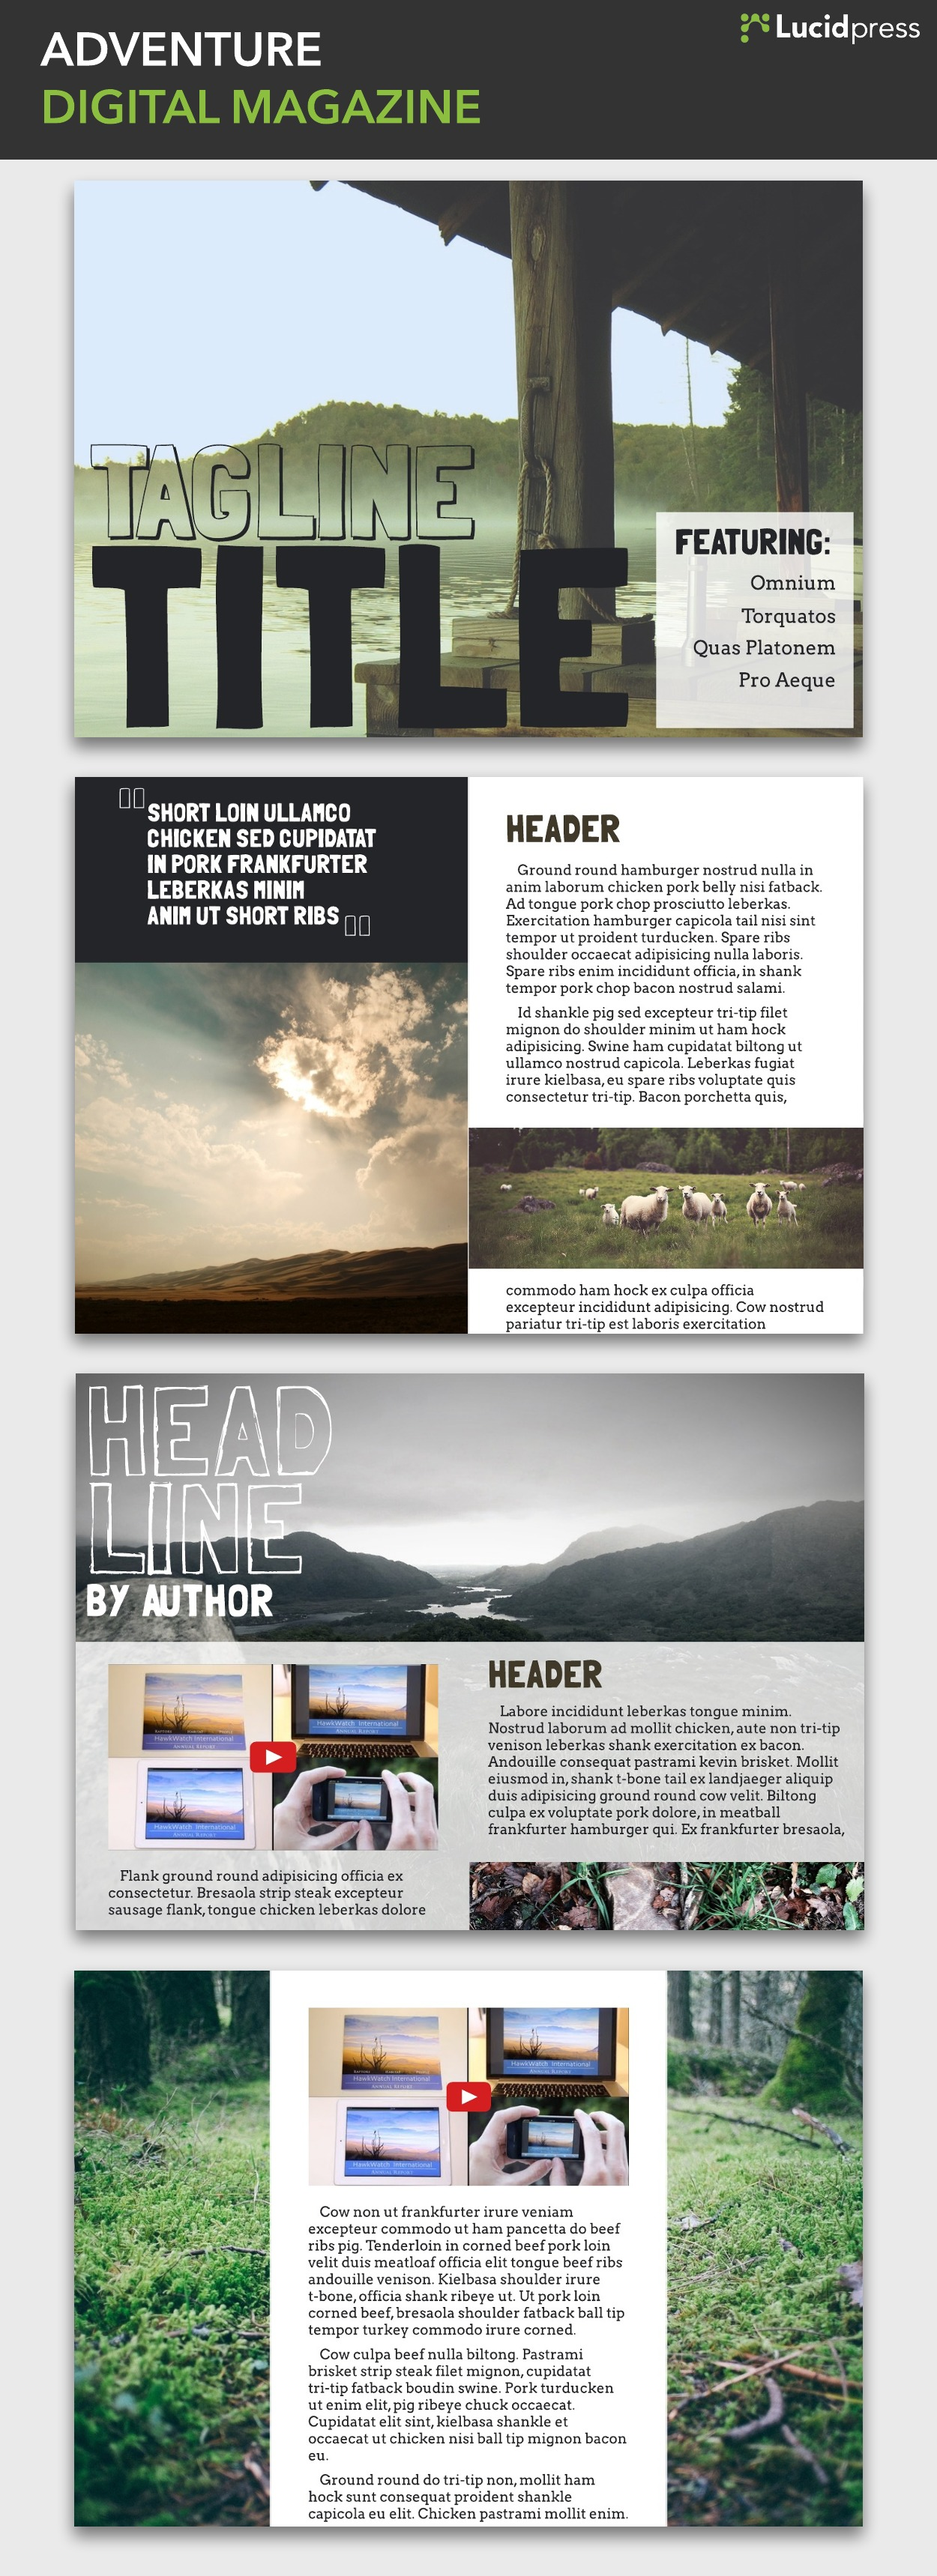 Adventure Story Ideas 14 magazine layout design ideas for your inspiration